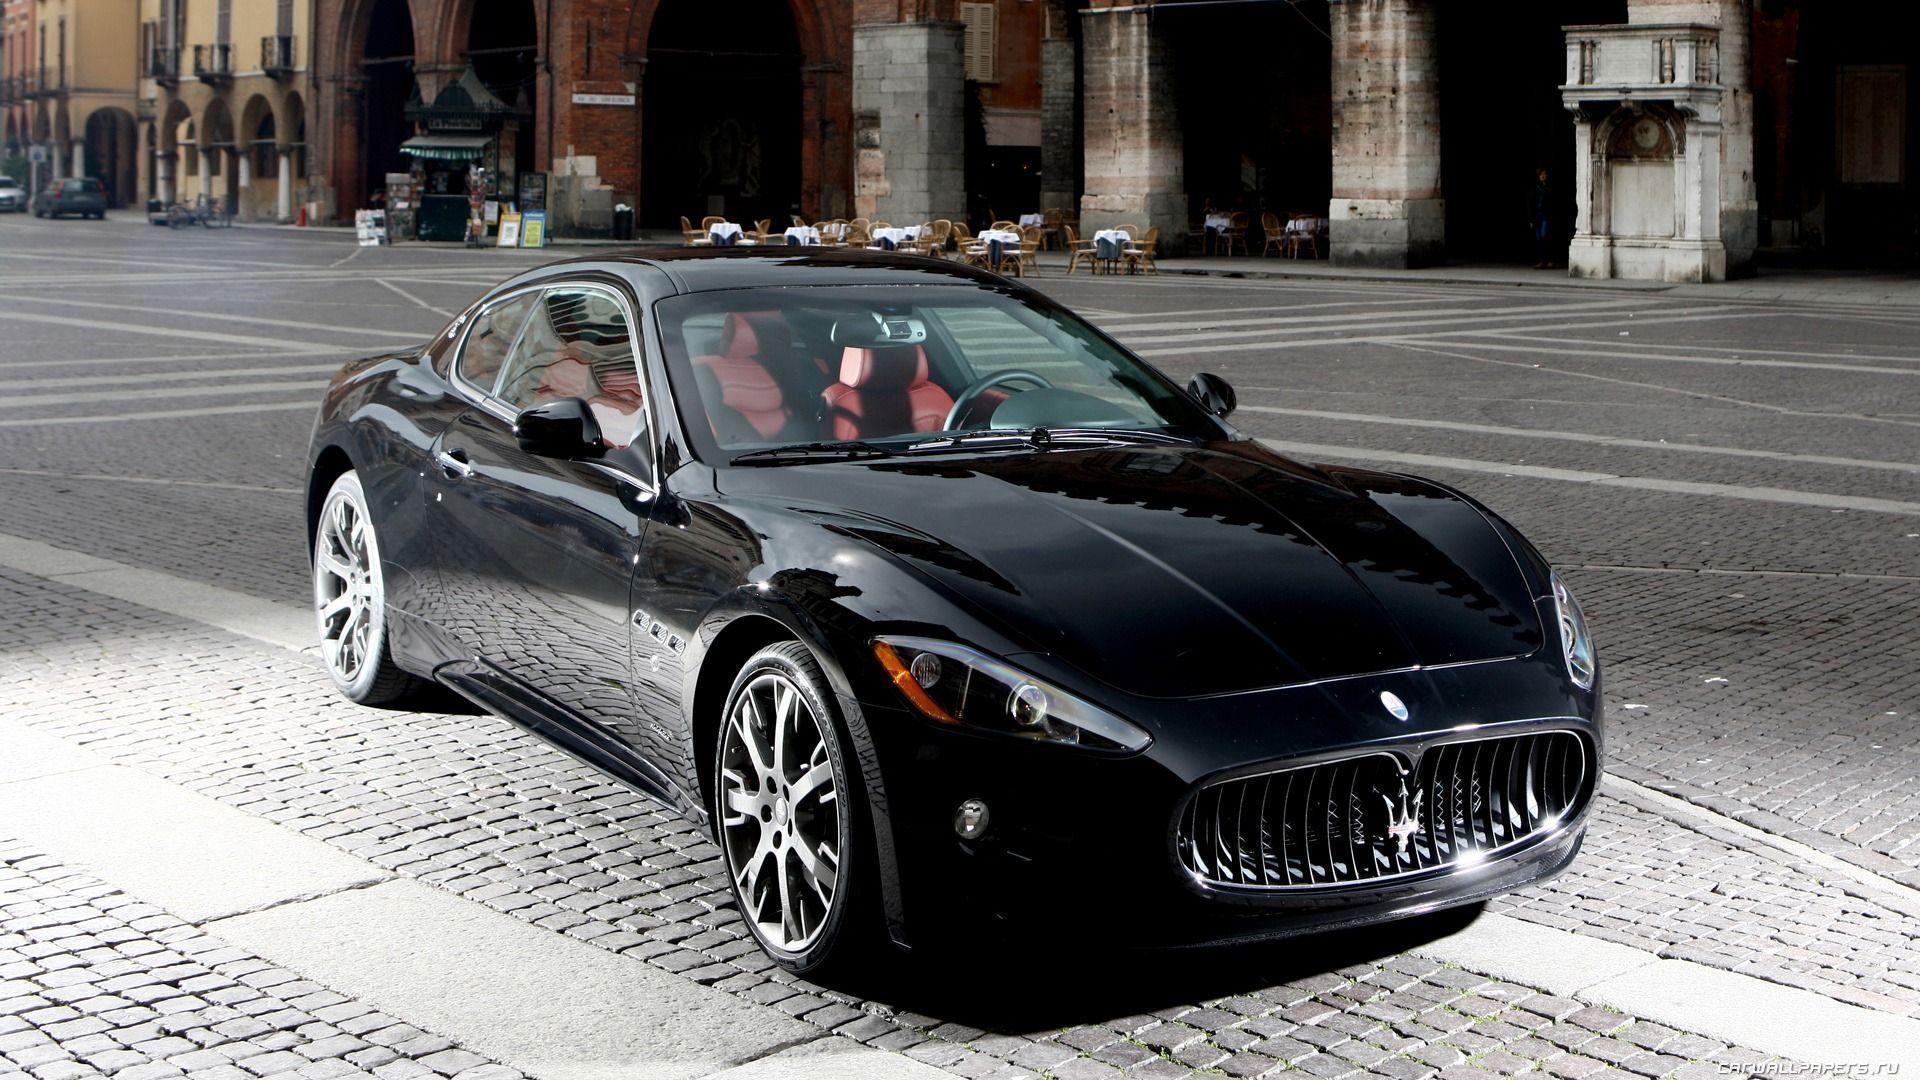 maserati quattroporte hd widescreen - photo #40